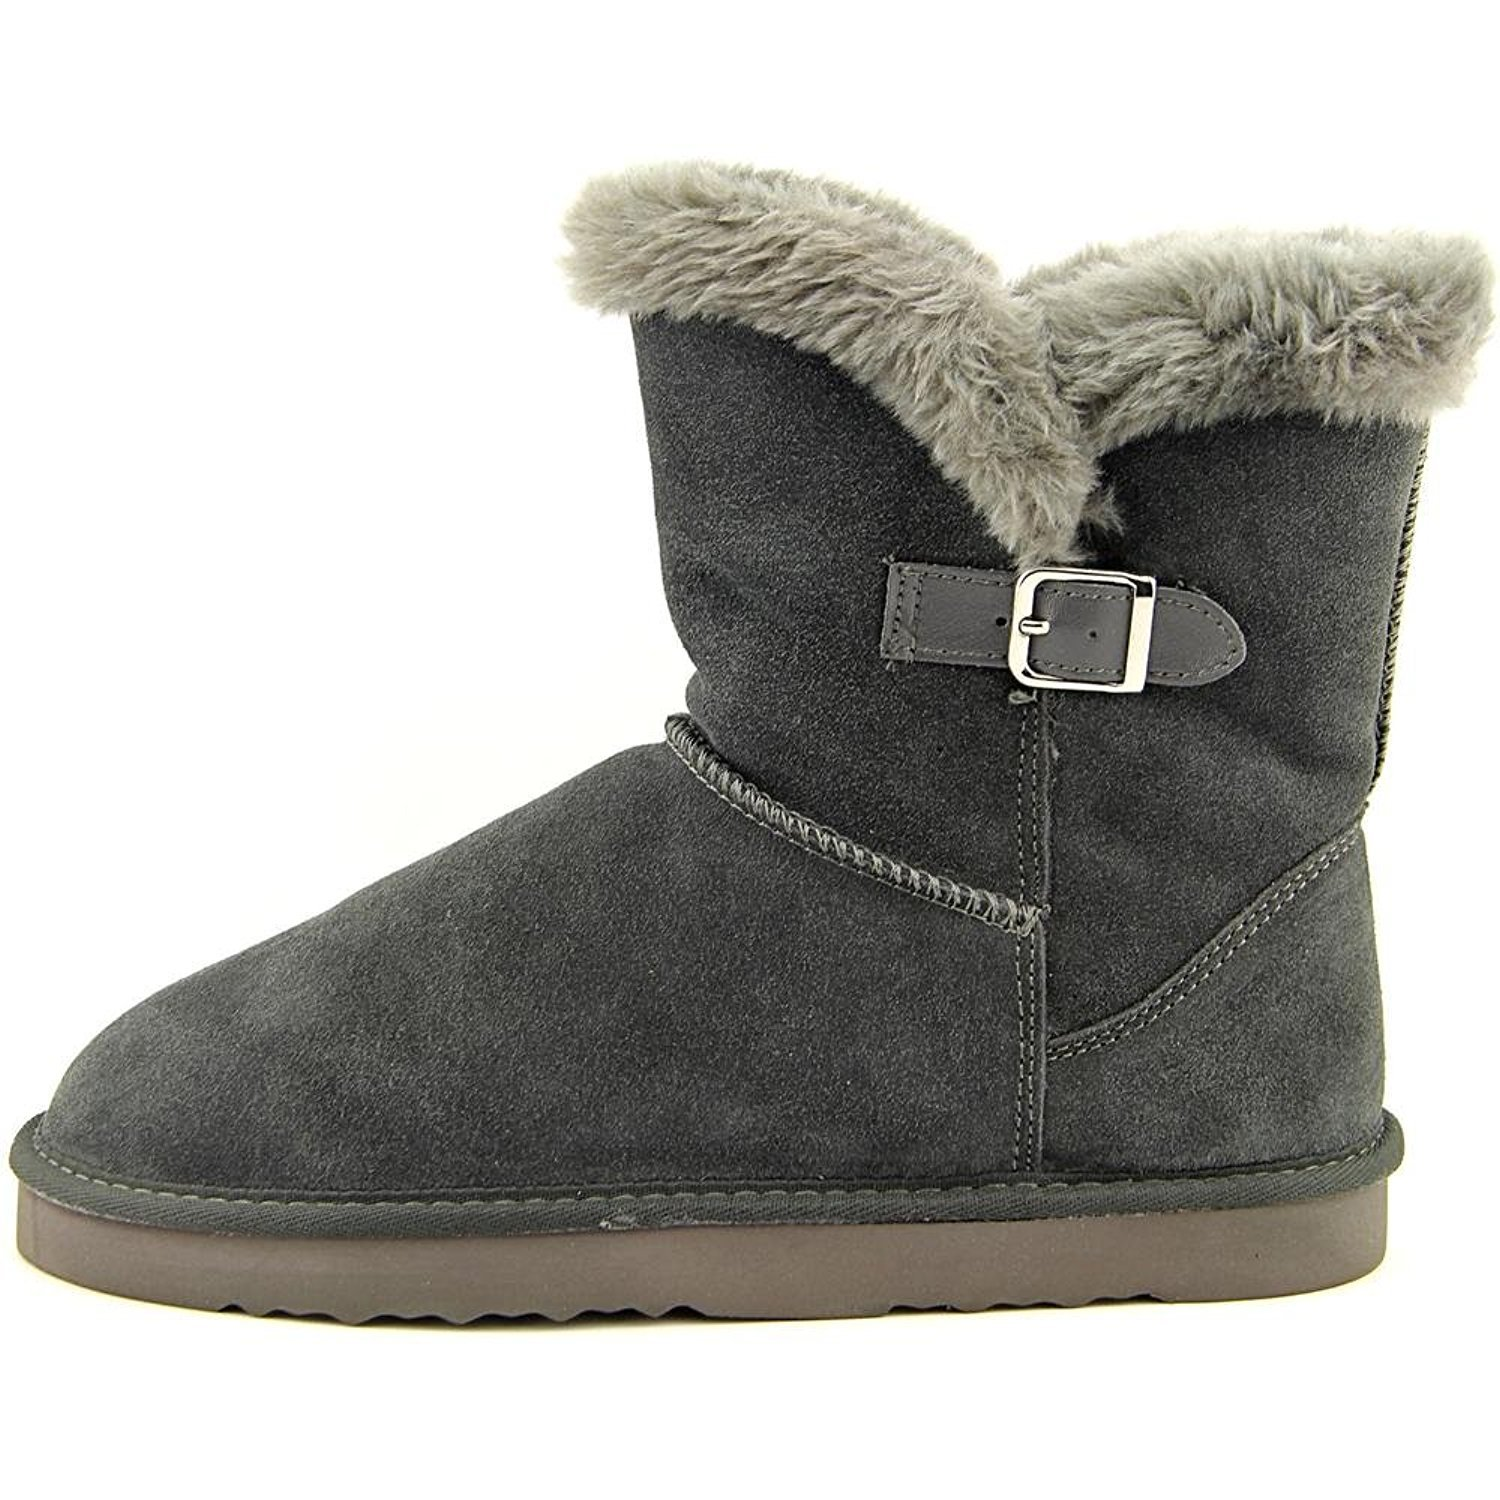 Style & Co. Womens Tiny 2 Leather Closed Toe Ankle Cold Weather Boots Grey Size 6.0